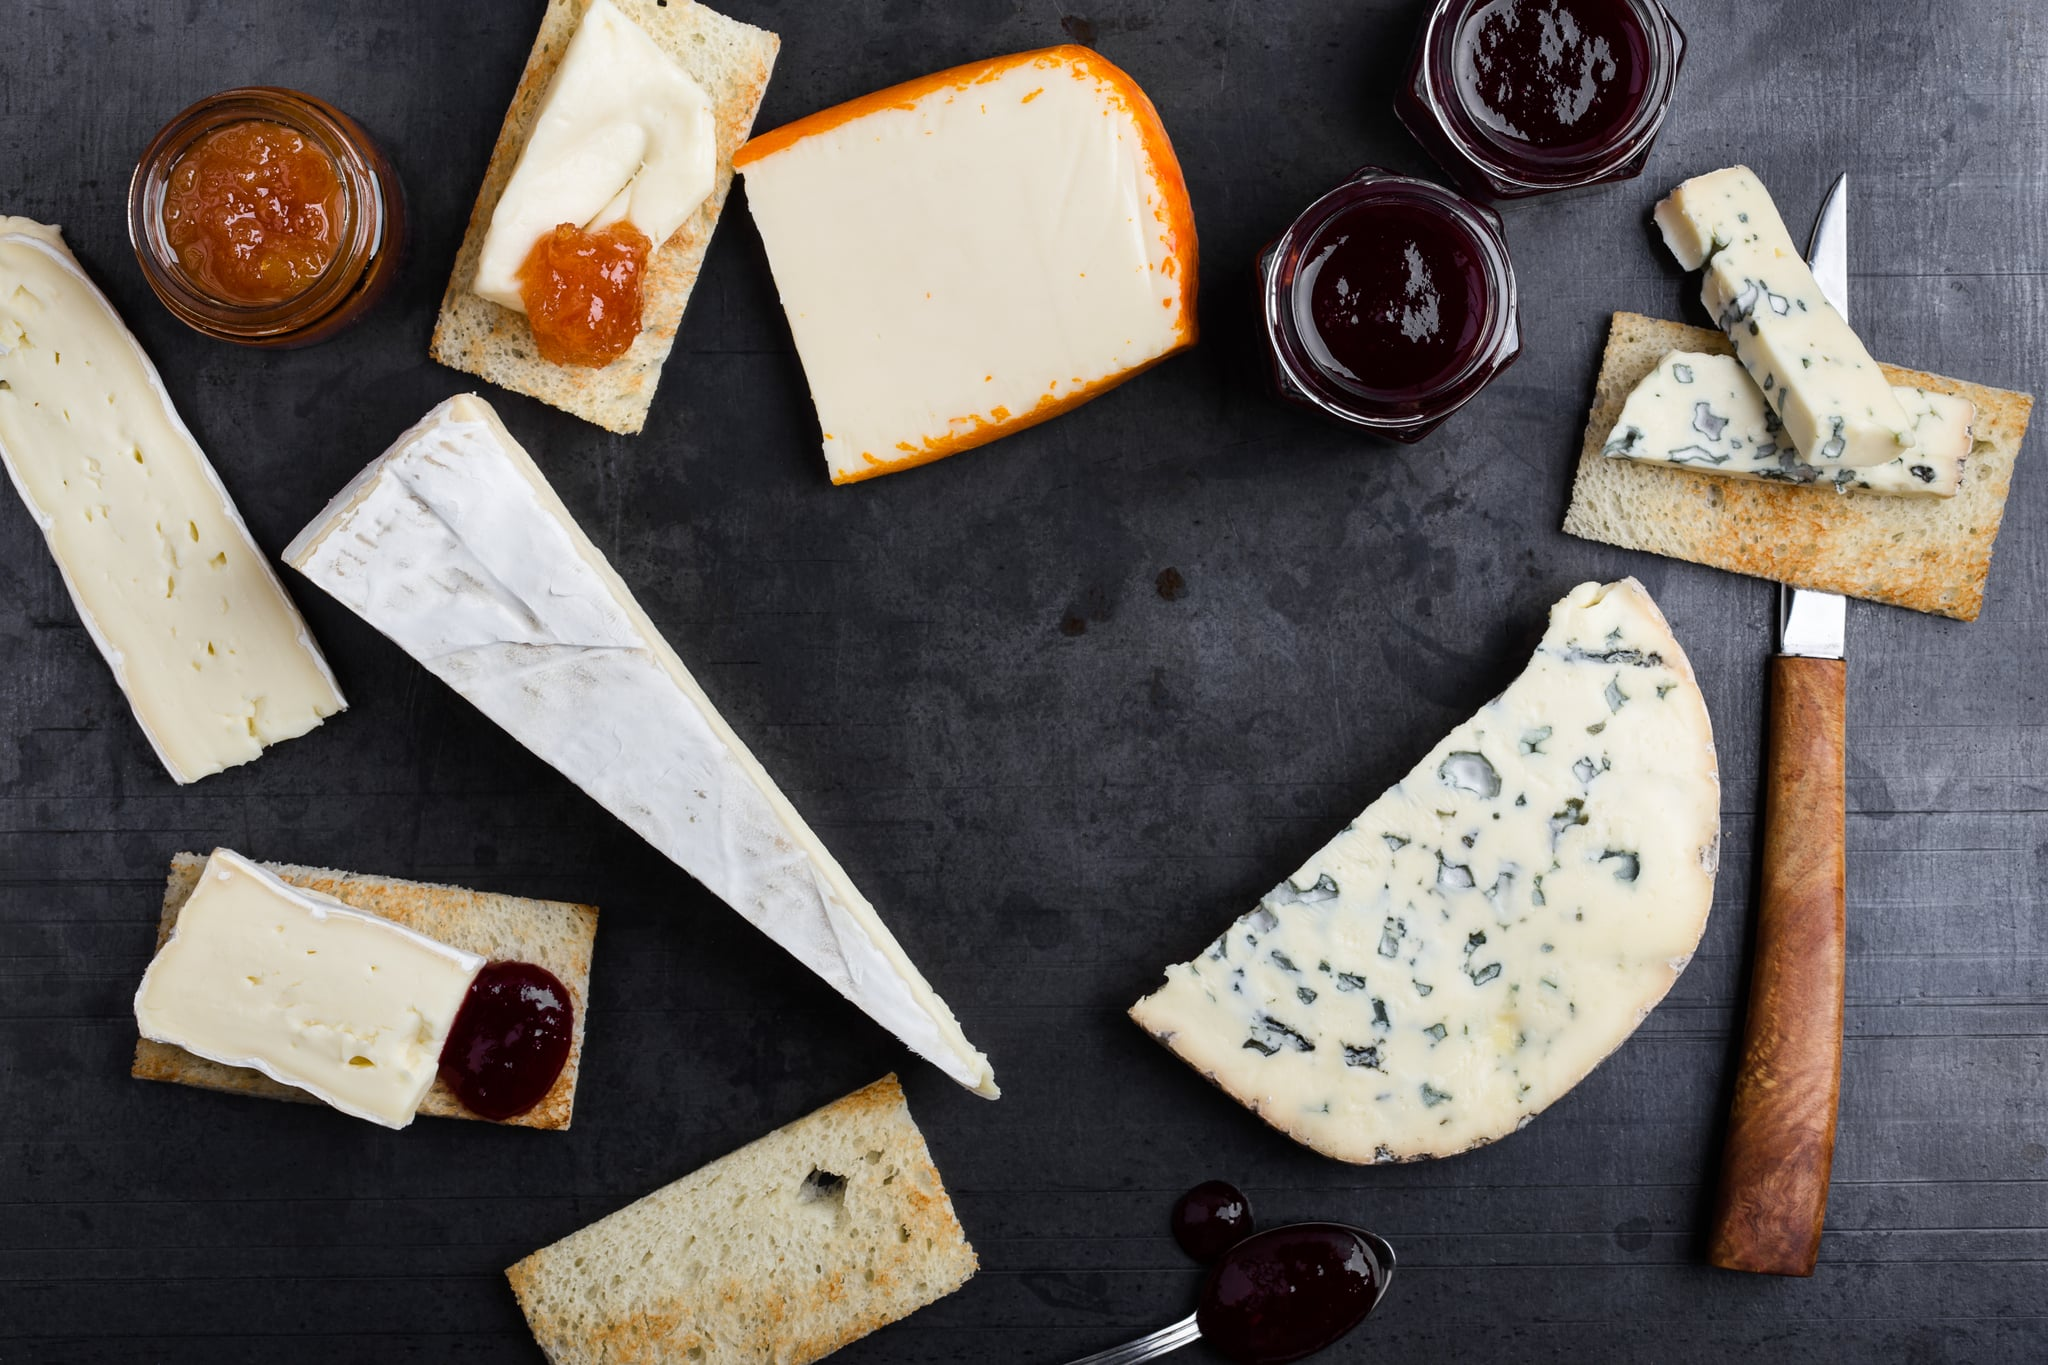 Various types of French cheese with jam over gray background viewed from above. Creamy Saint Paulin cheese, brie, Fourme d'Ambert blue cheese